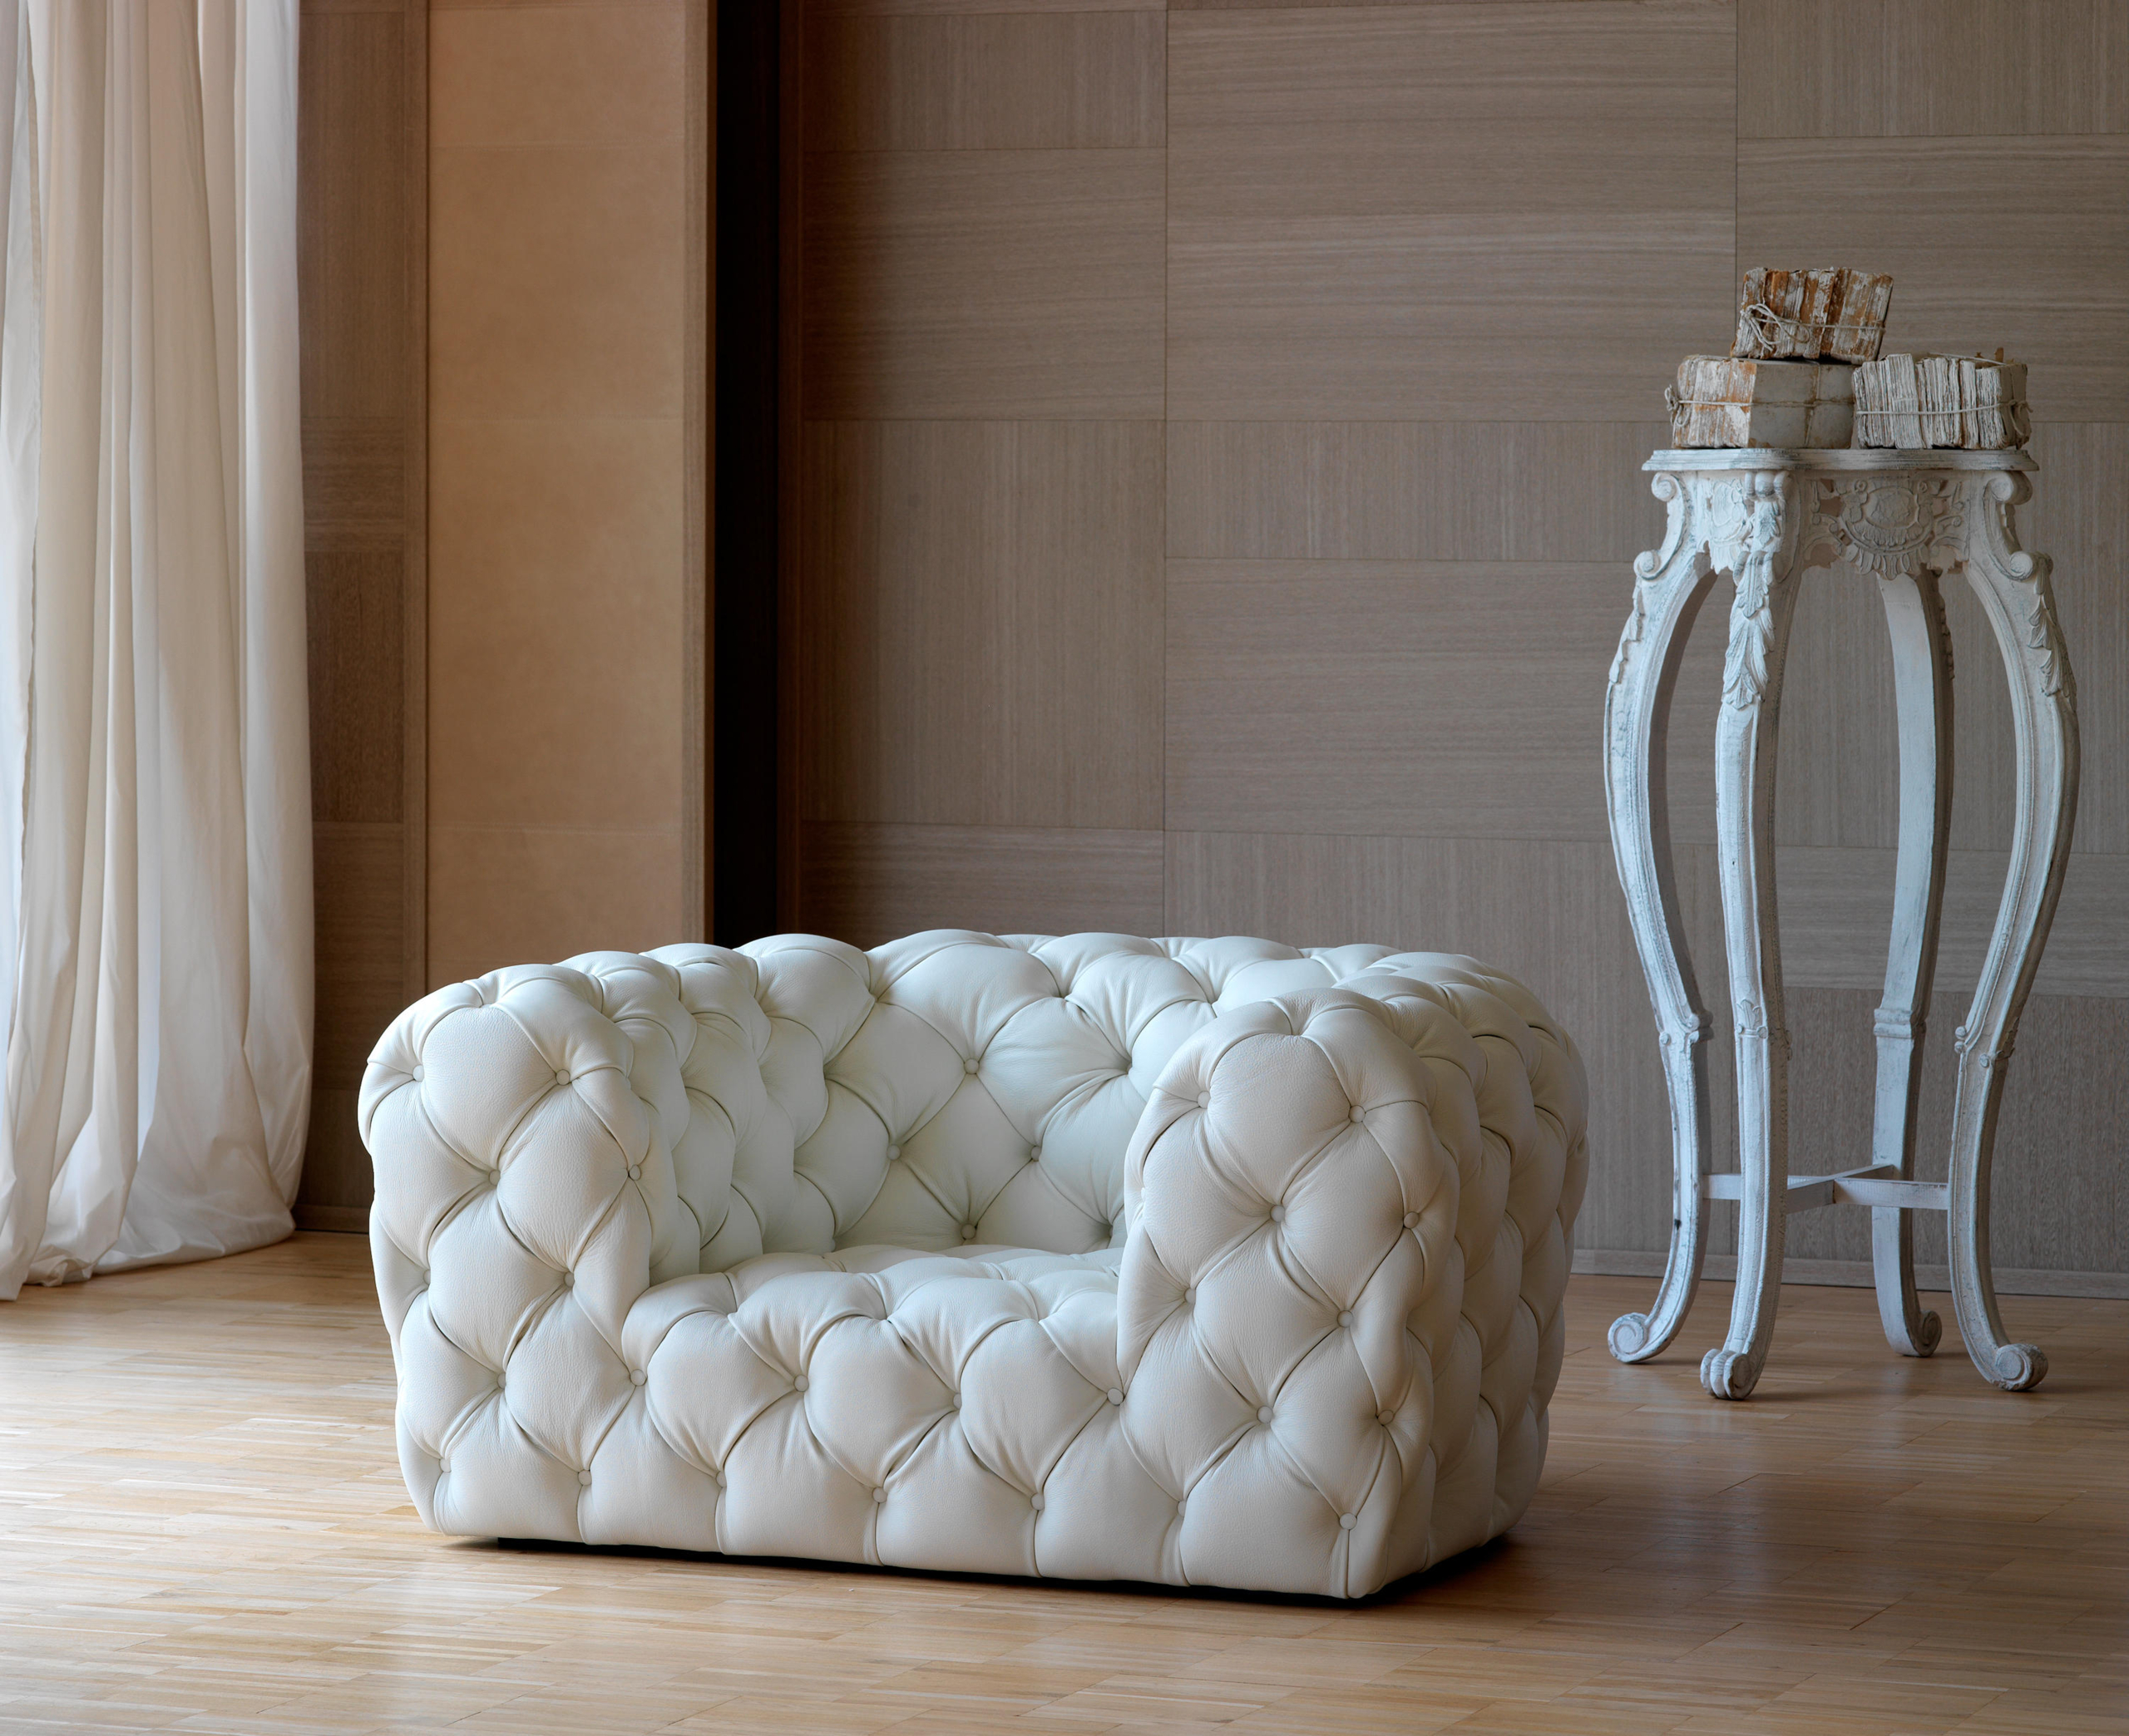 Delicieux White Tufted Leather Sofa By Baxter 2